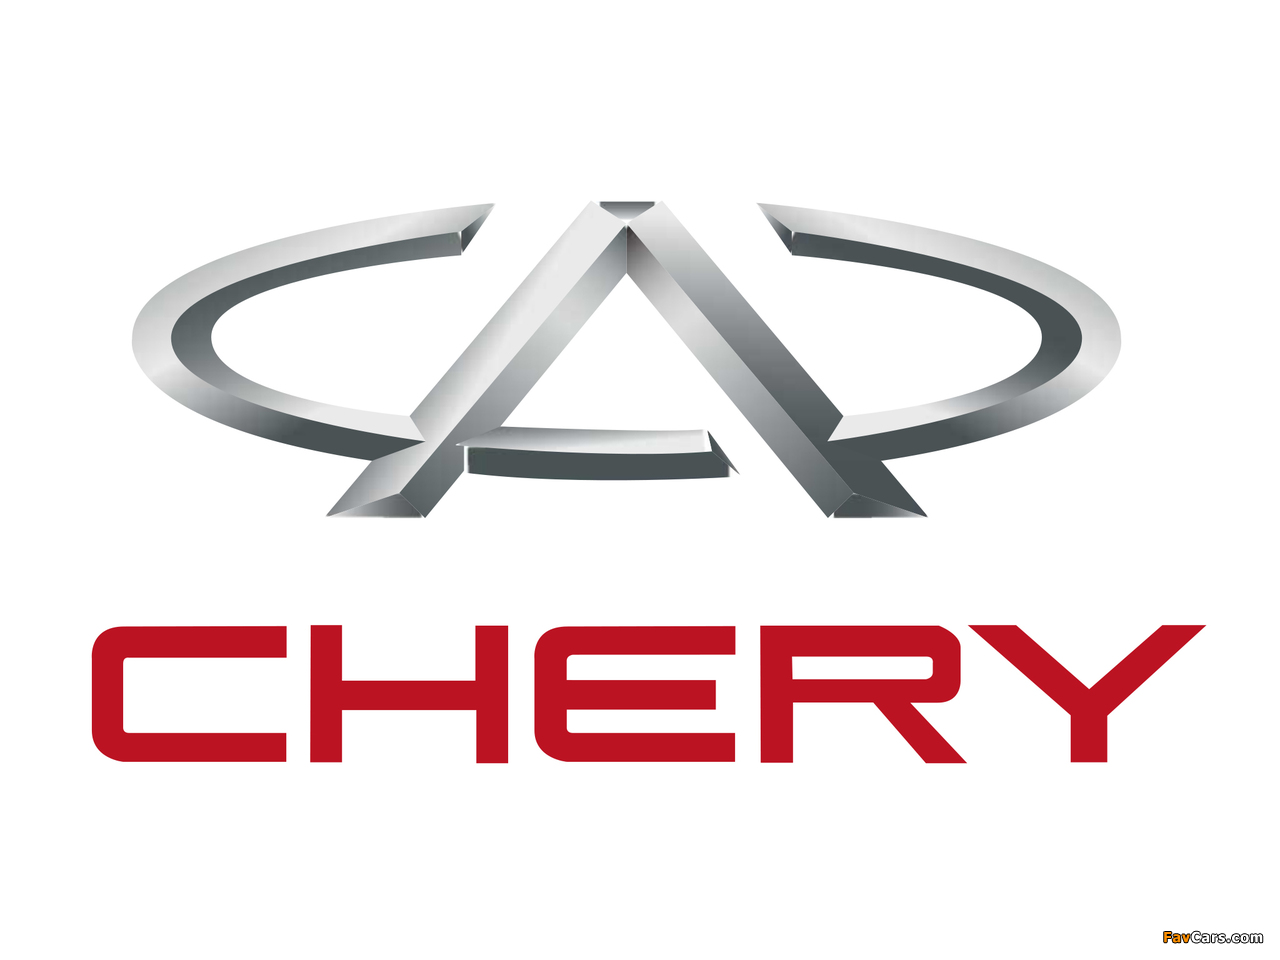 Chery images (1280 x 960)